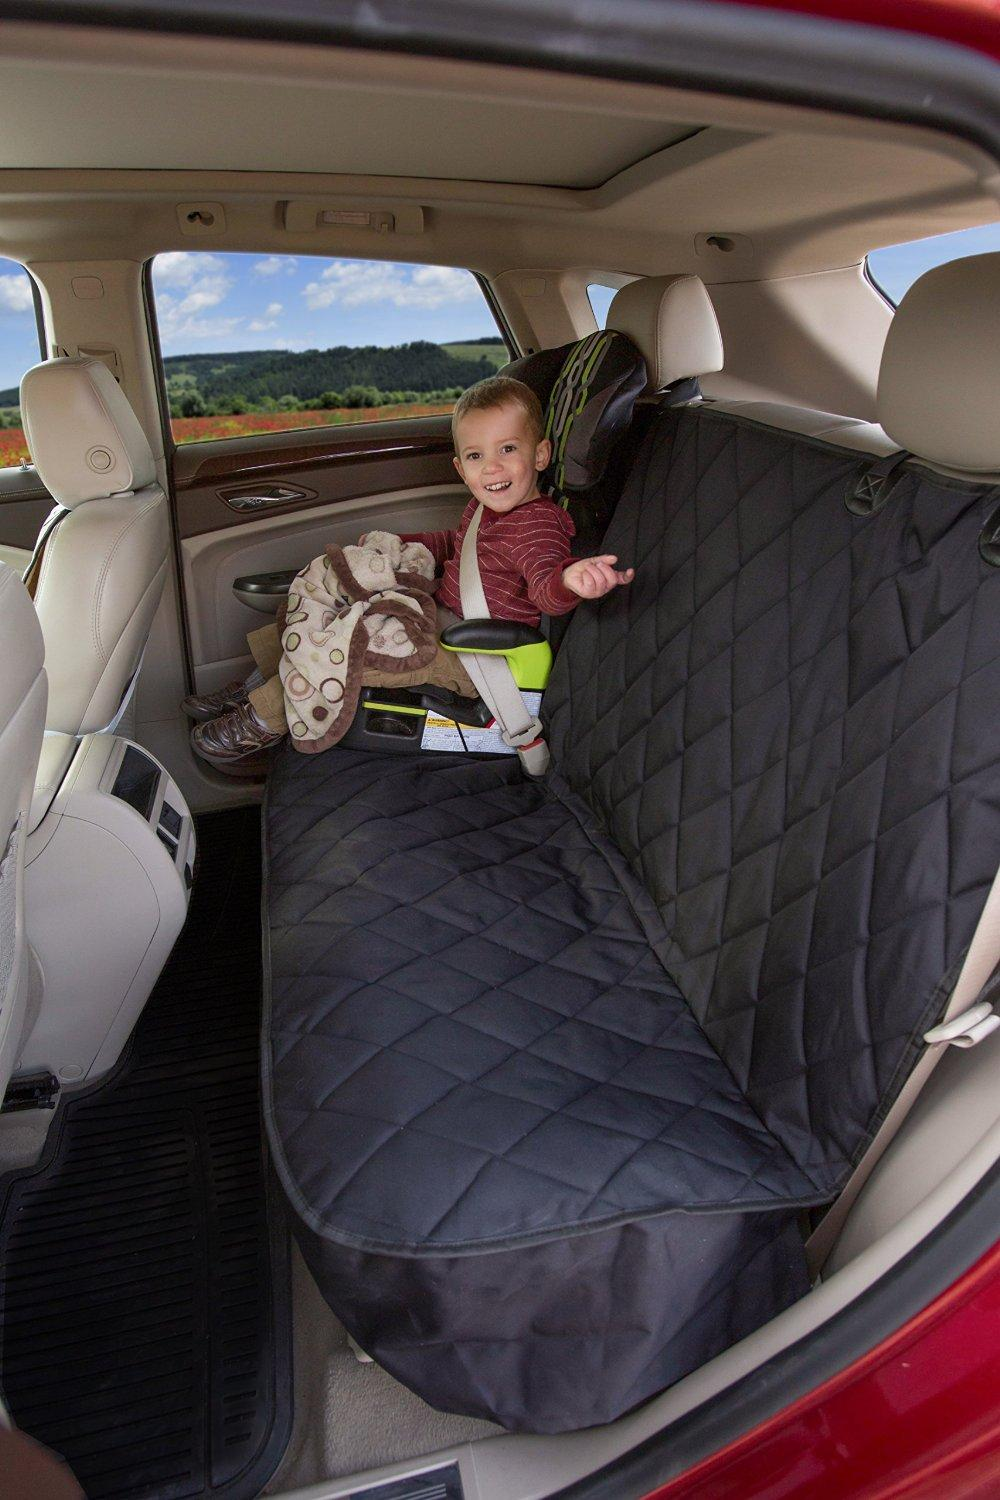 10% OFF Rear Car Seat Cover (Black, Regular) sale @ Amazon.com